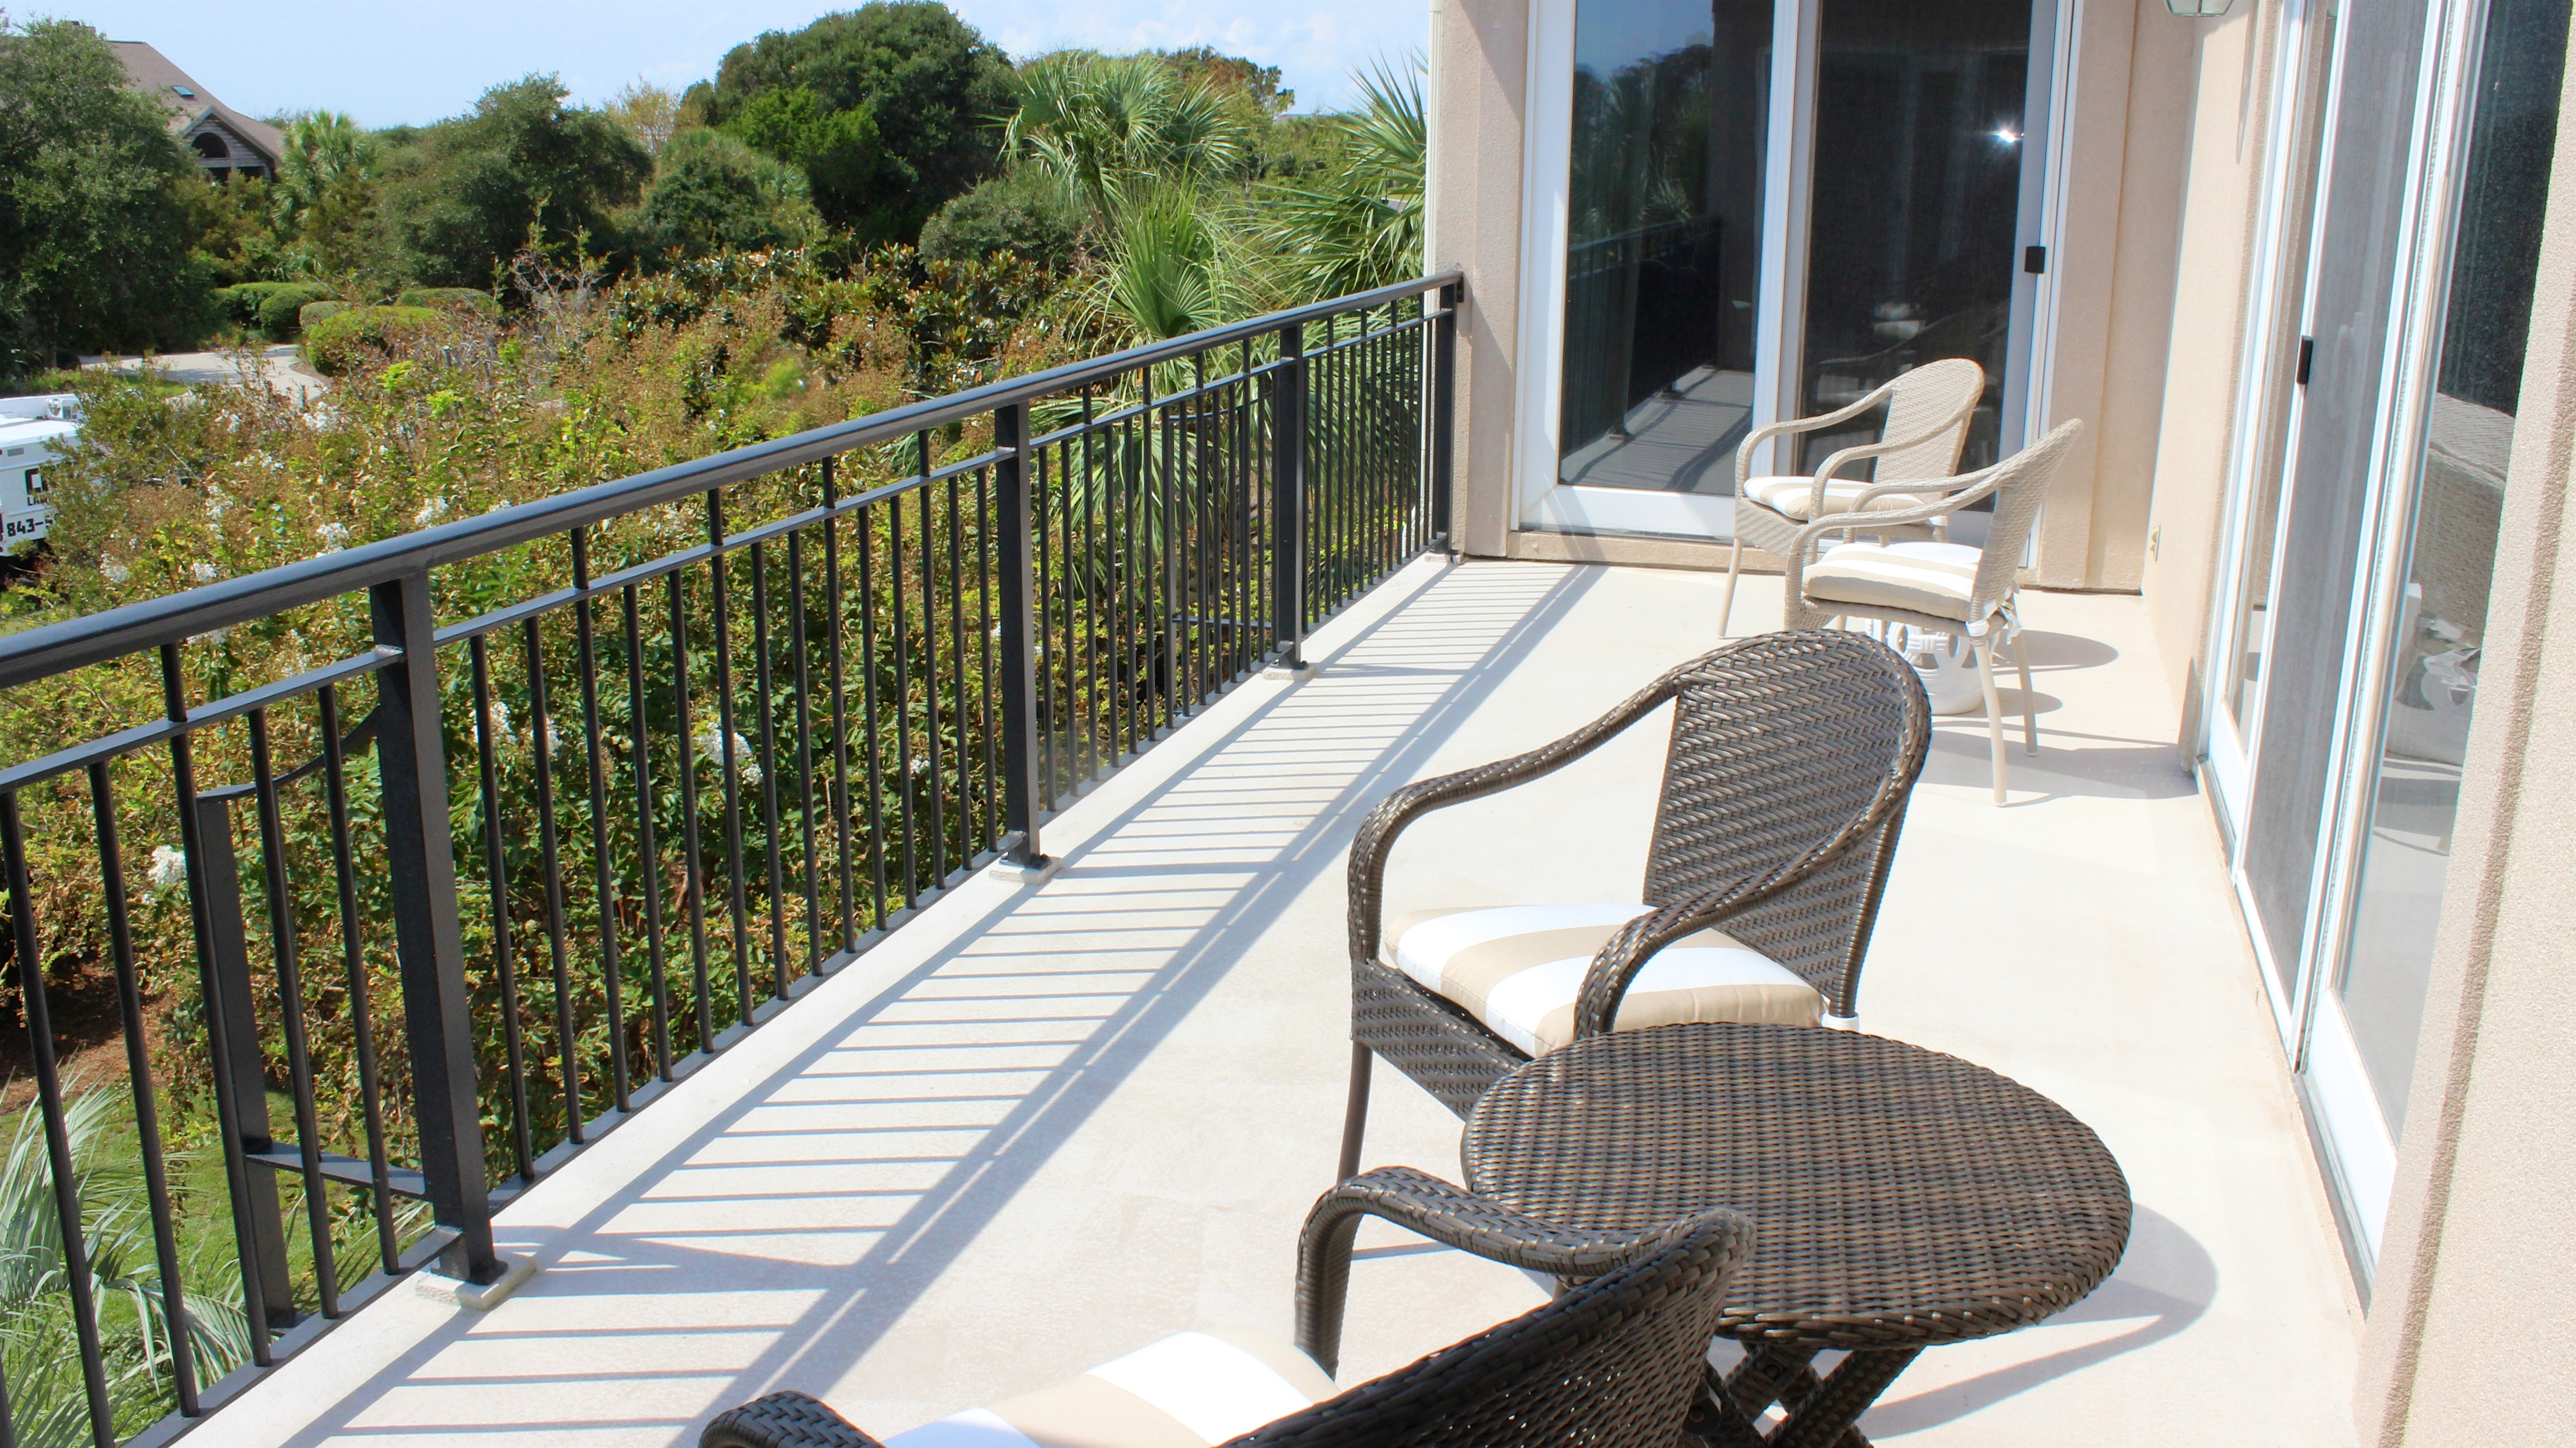 The deck is accessible from the living room, dining area and master bedroom.